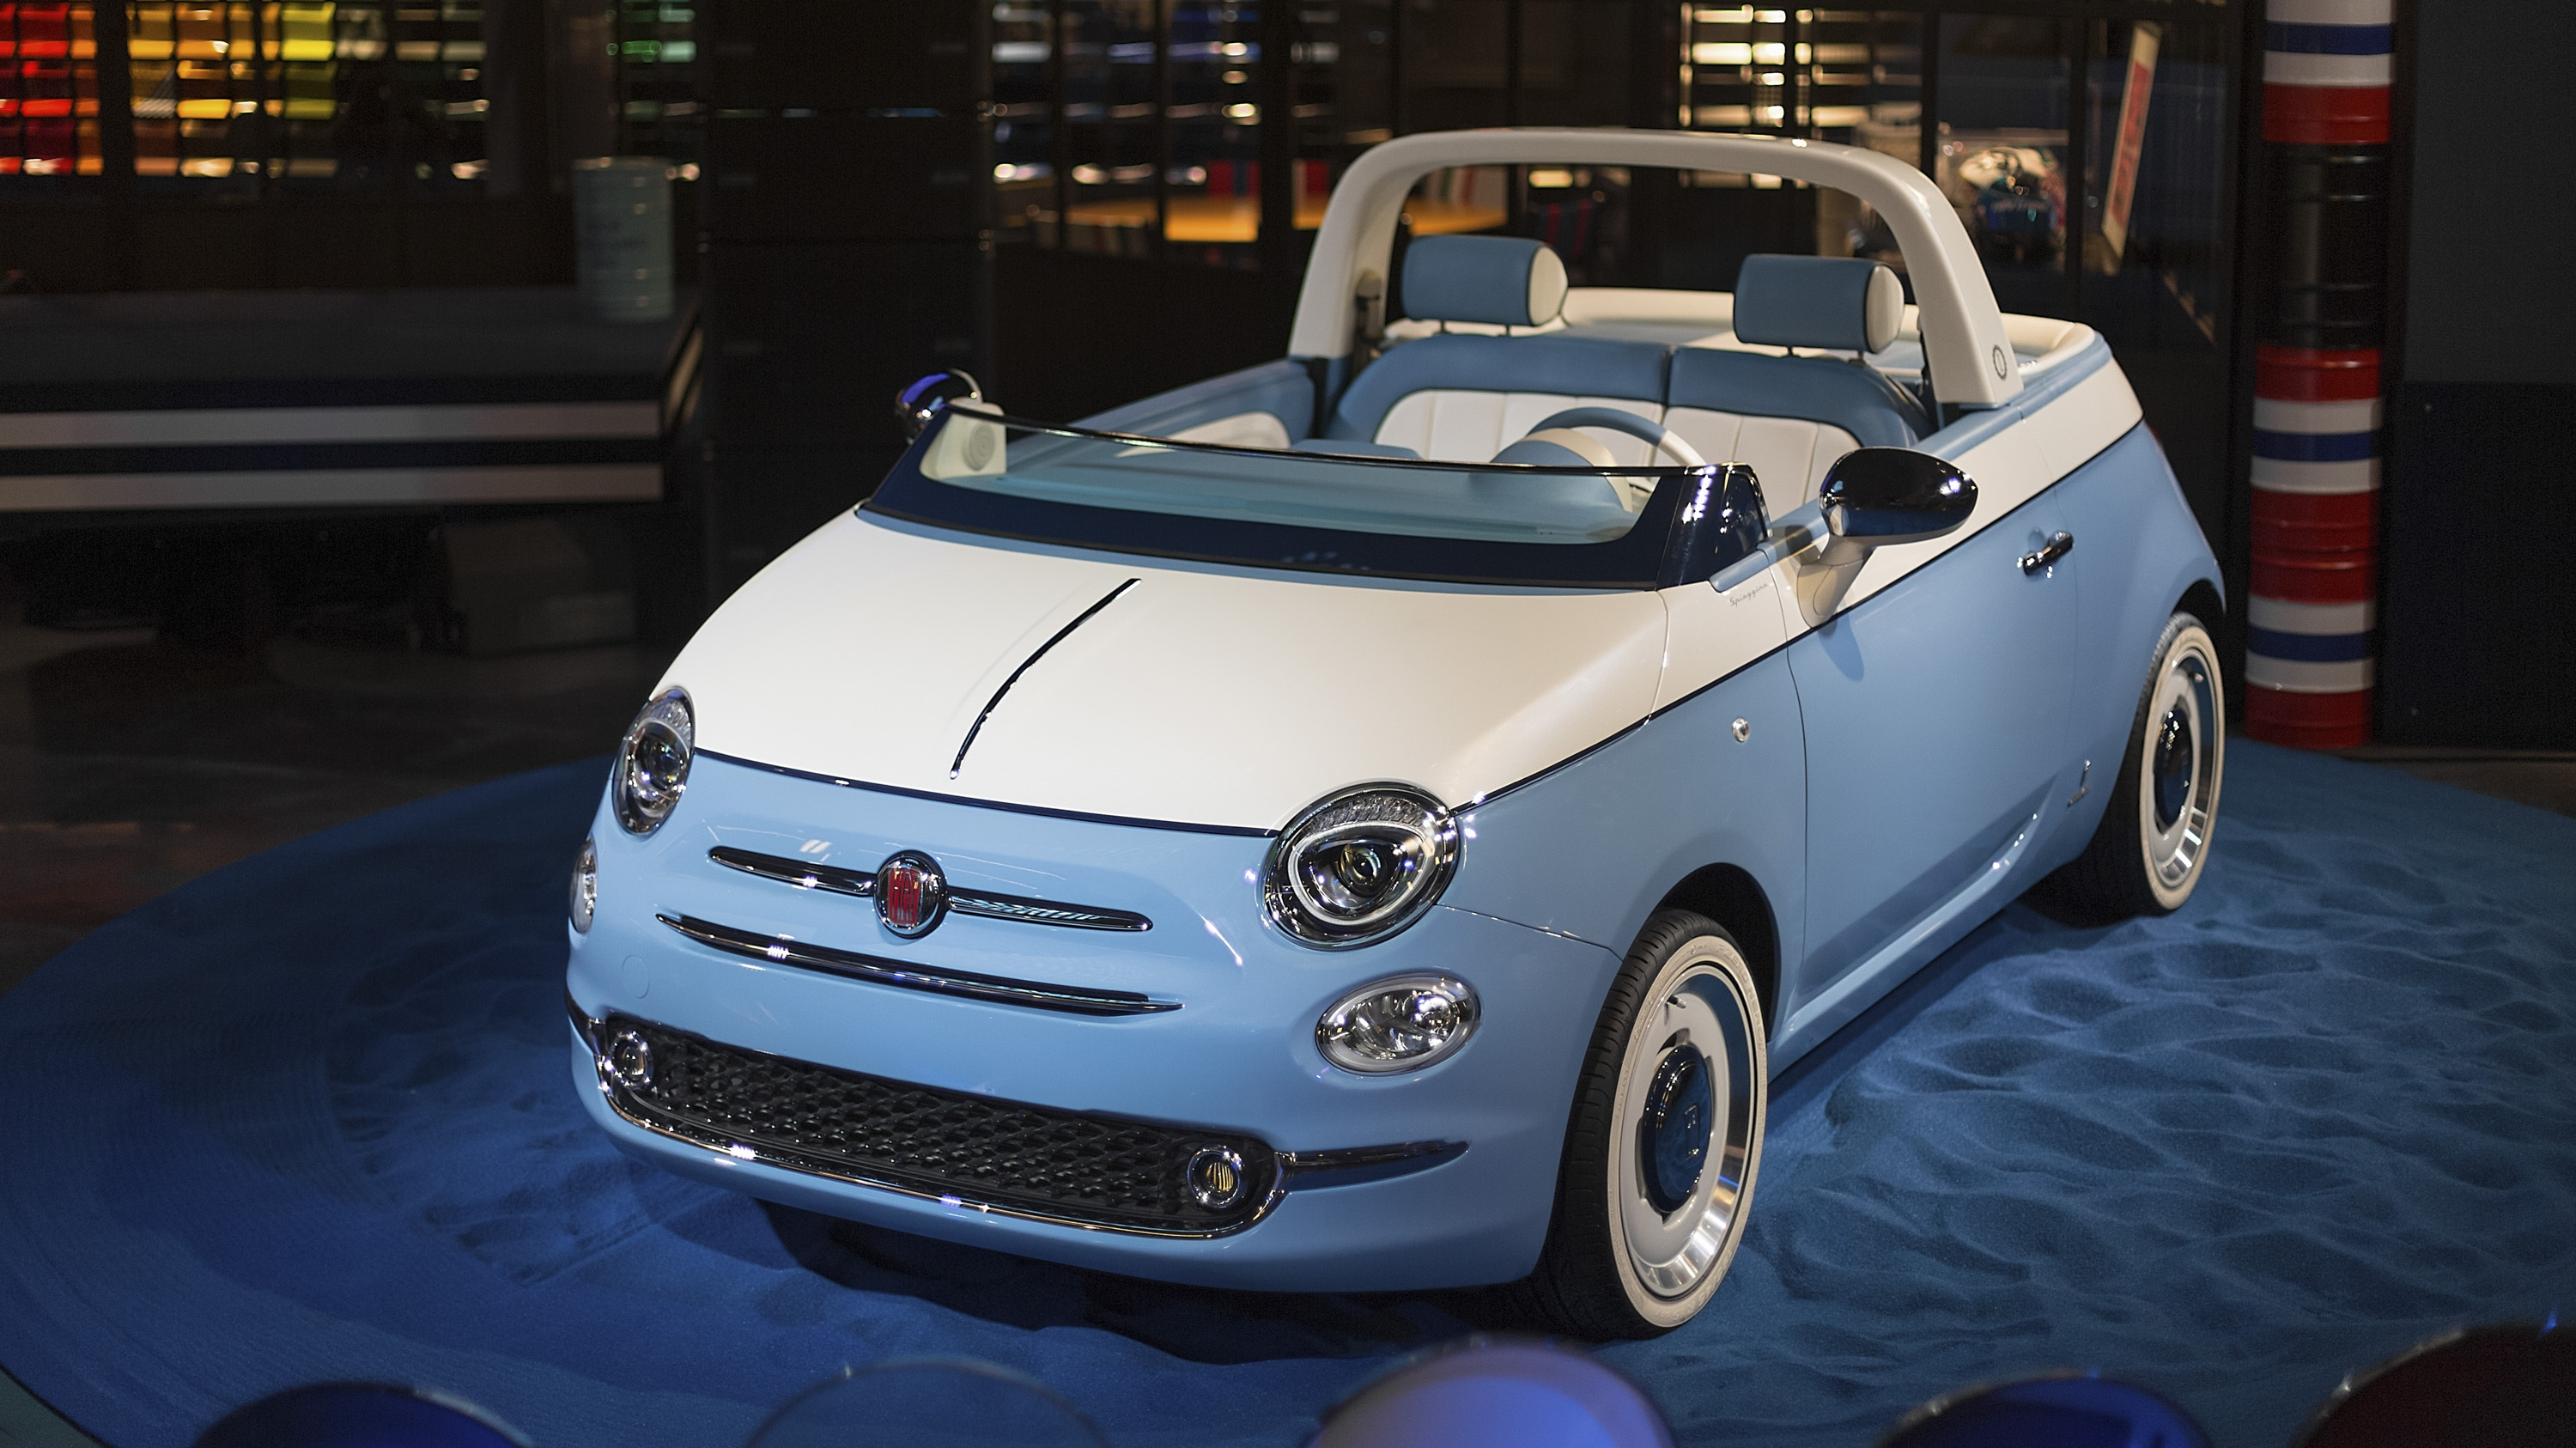 2018 fiat 500 spiaggina by garage italia and pinninfarina for Garage fiat 500